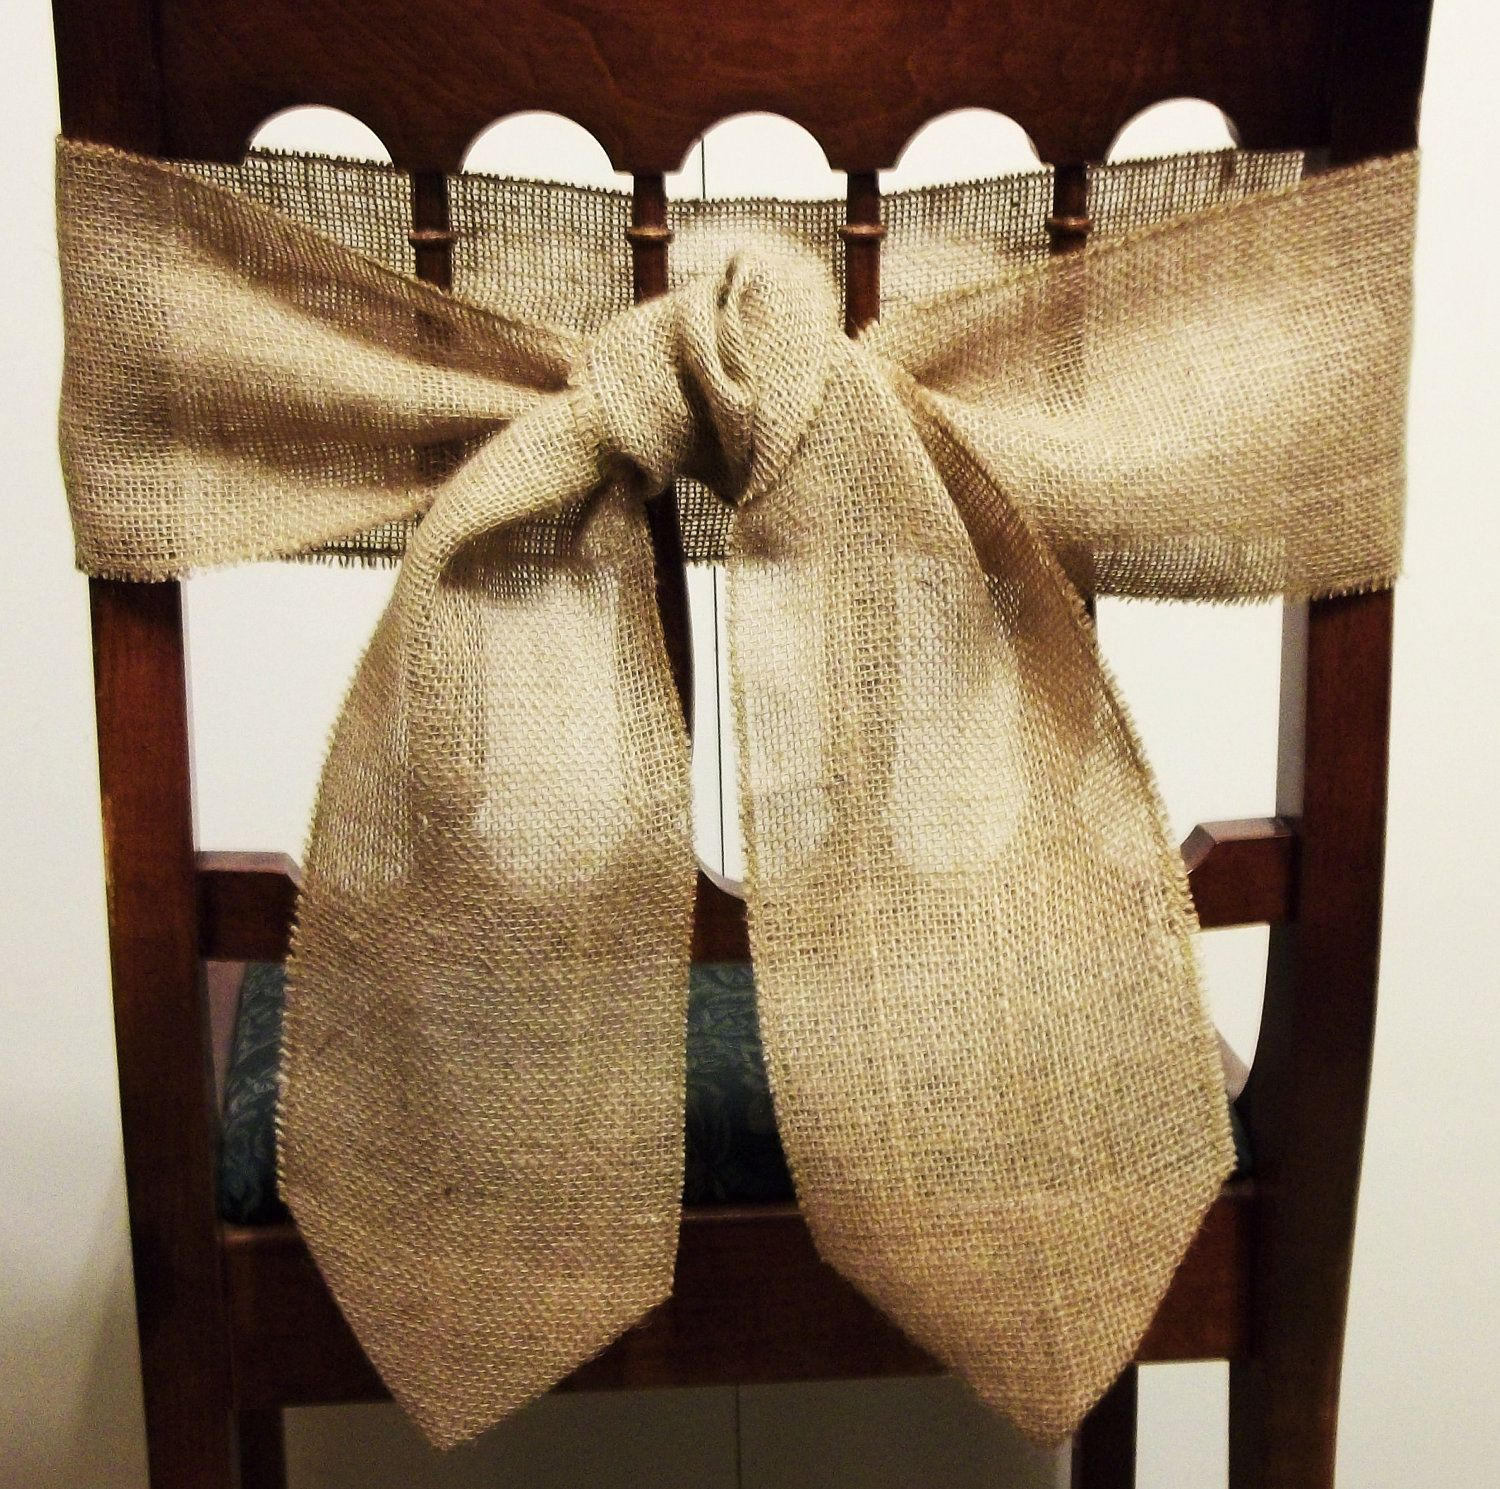 Burlap Dining Chair Covers Thomas The Train 10 Back Ties Wedding Home Decor